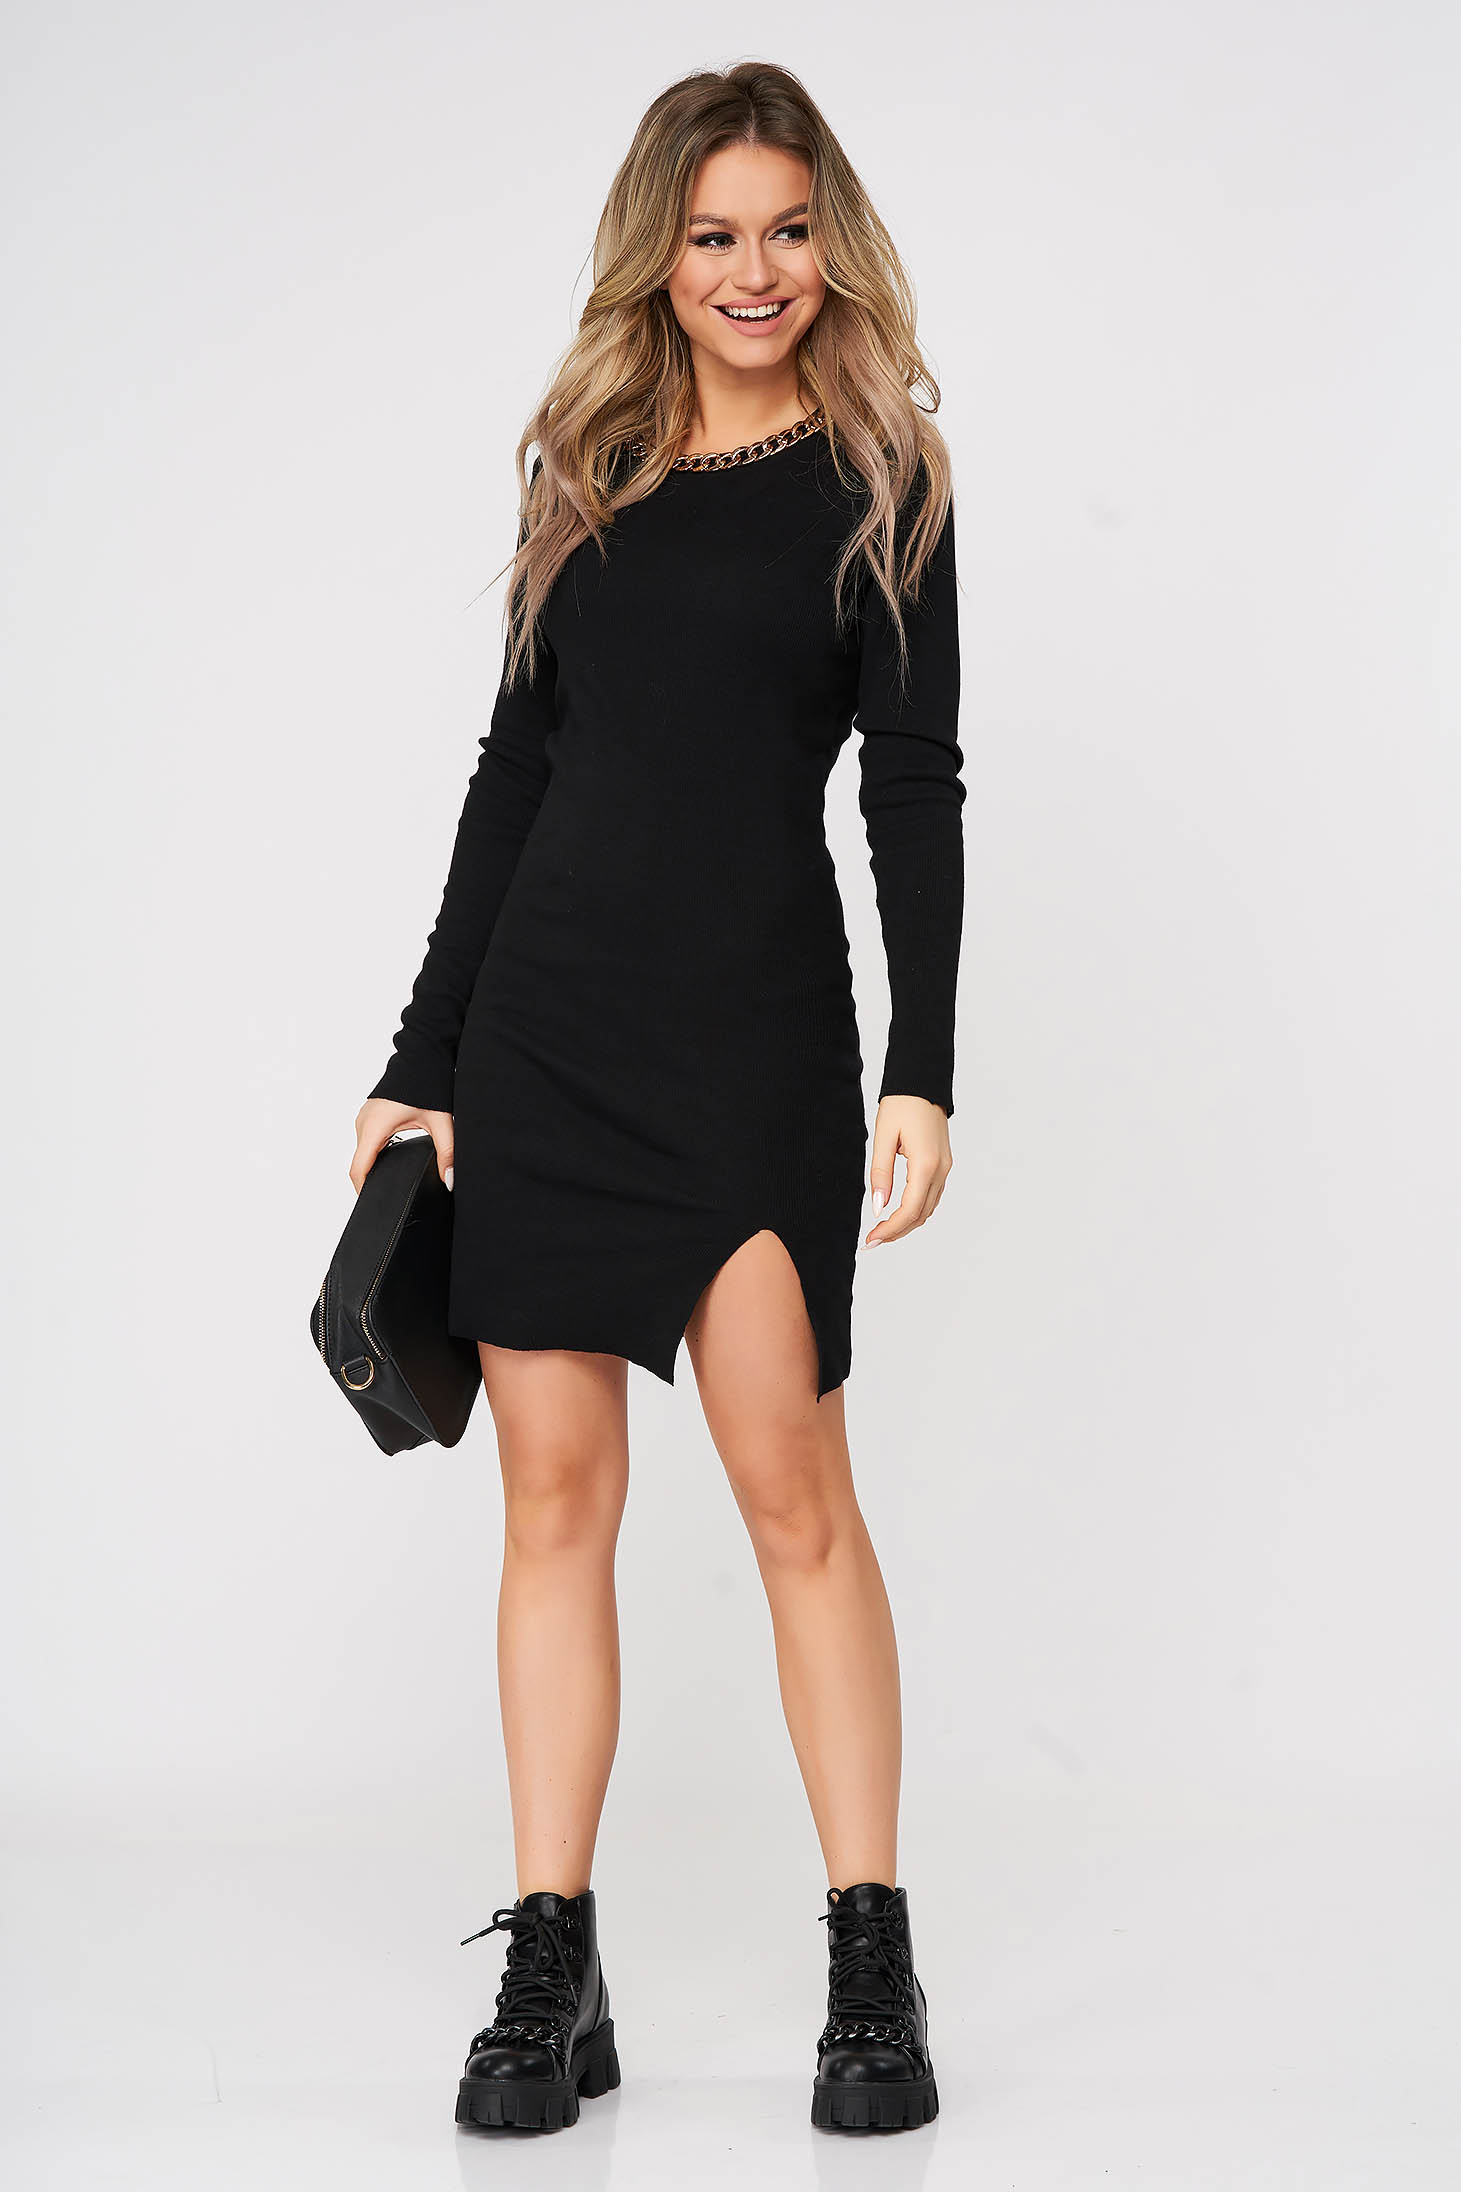 Black dress casual short cut pencil accessorized with chain from striped fabric